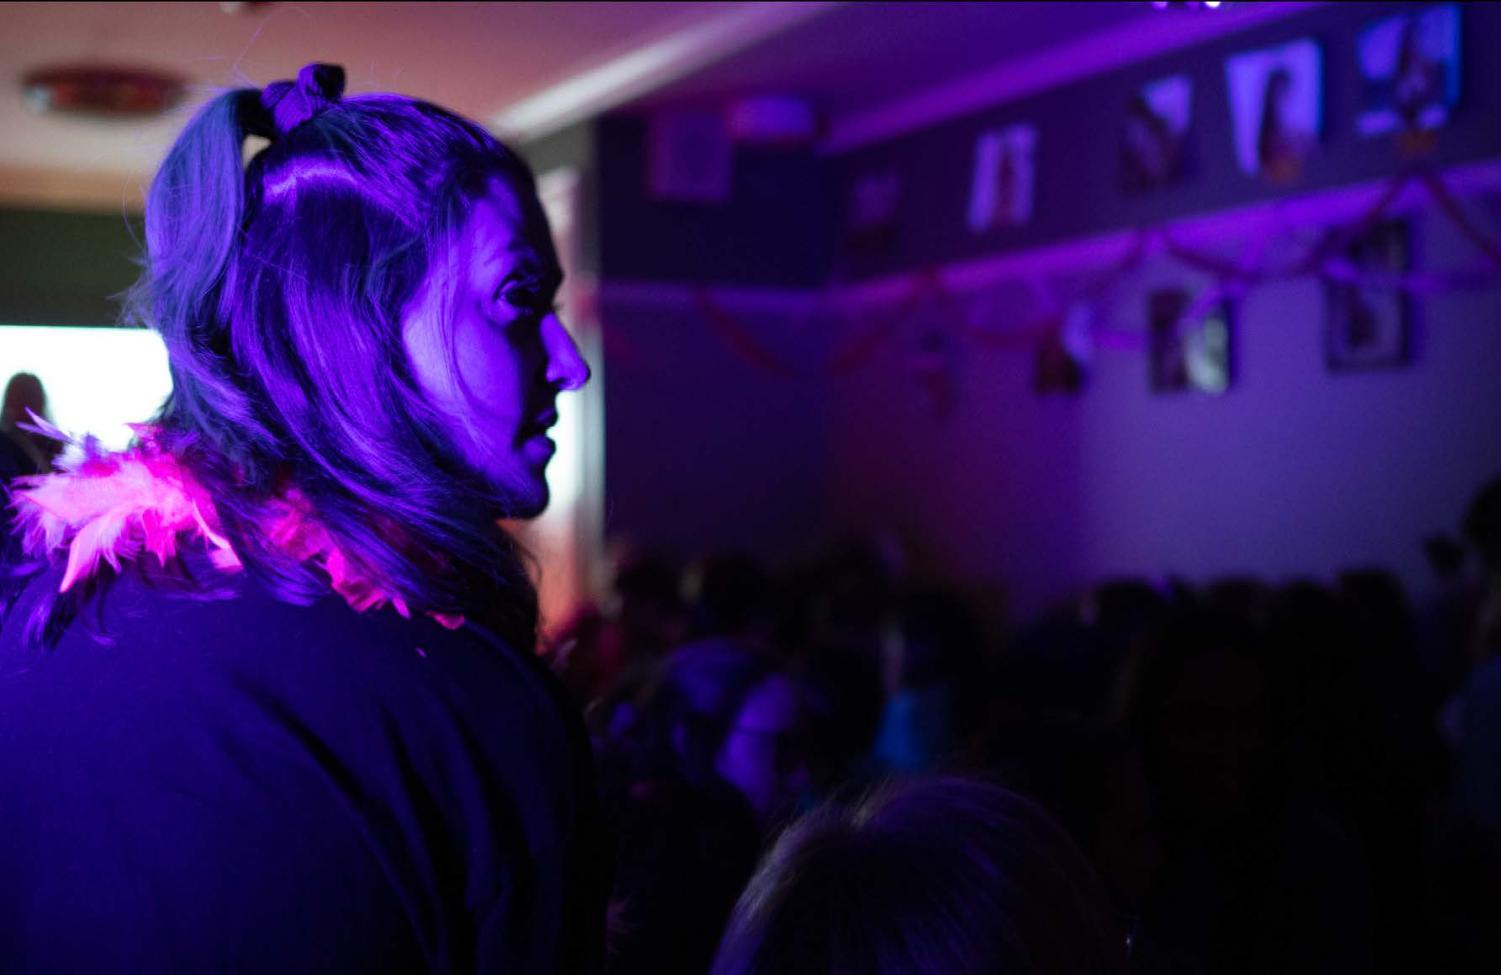 Mandy Blakeman '22 and others attending Erotica night on Saturday. Photo by Ian Plummer.